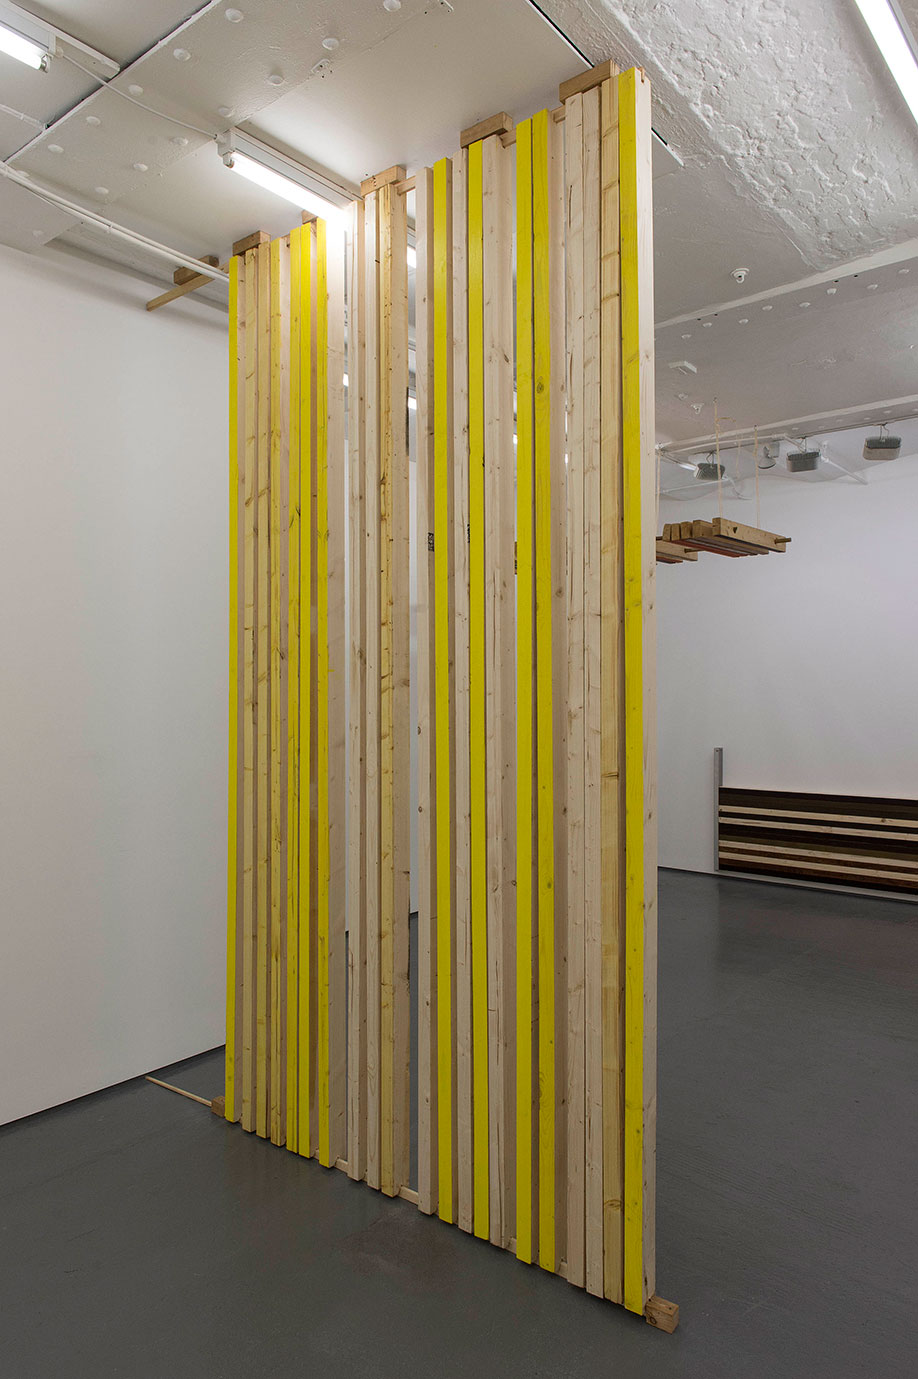 <b>Title:&nbsp;</b>Room Wood<br /><b>Year:&nbsp;</b>2015<br /><b>Medium:&nbsp;</b>Wood, metal and paint<br /><b>Size:&nbsp;</b>Dimensions variable